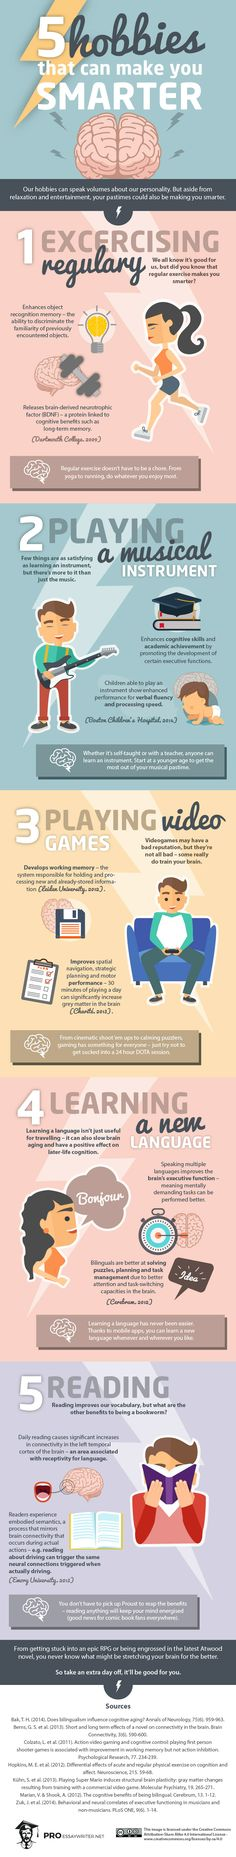 Starting any new hobby will have positive benefits in some way. Today's infographic focuses on five of the most common hobbies, but almost anything will get your brain moving.